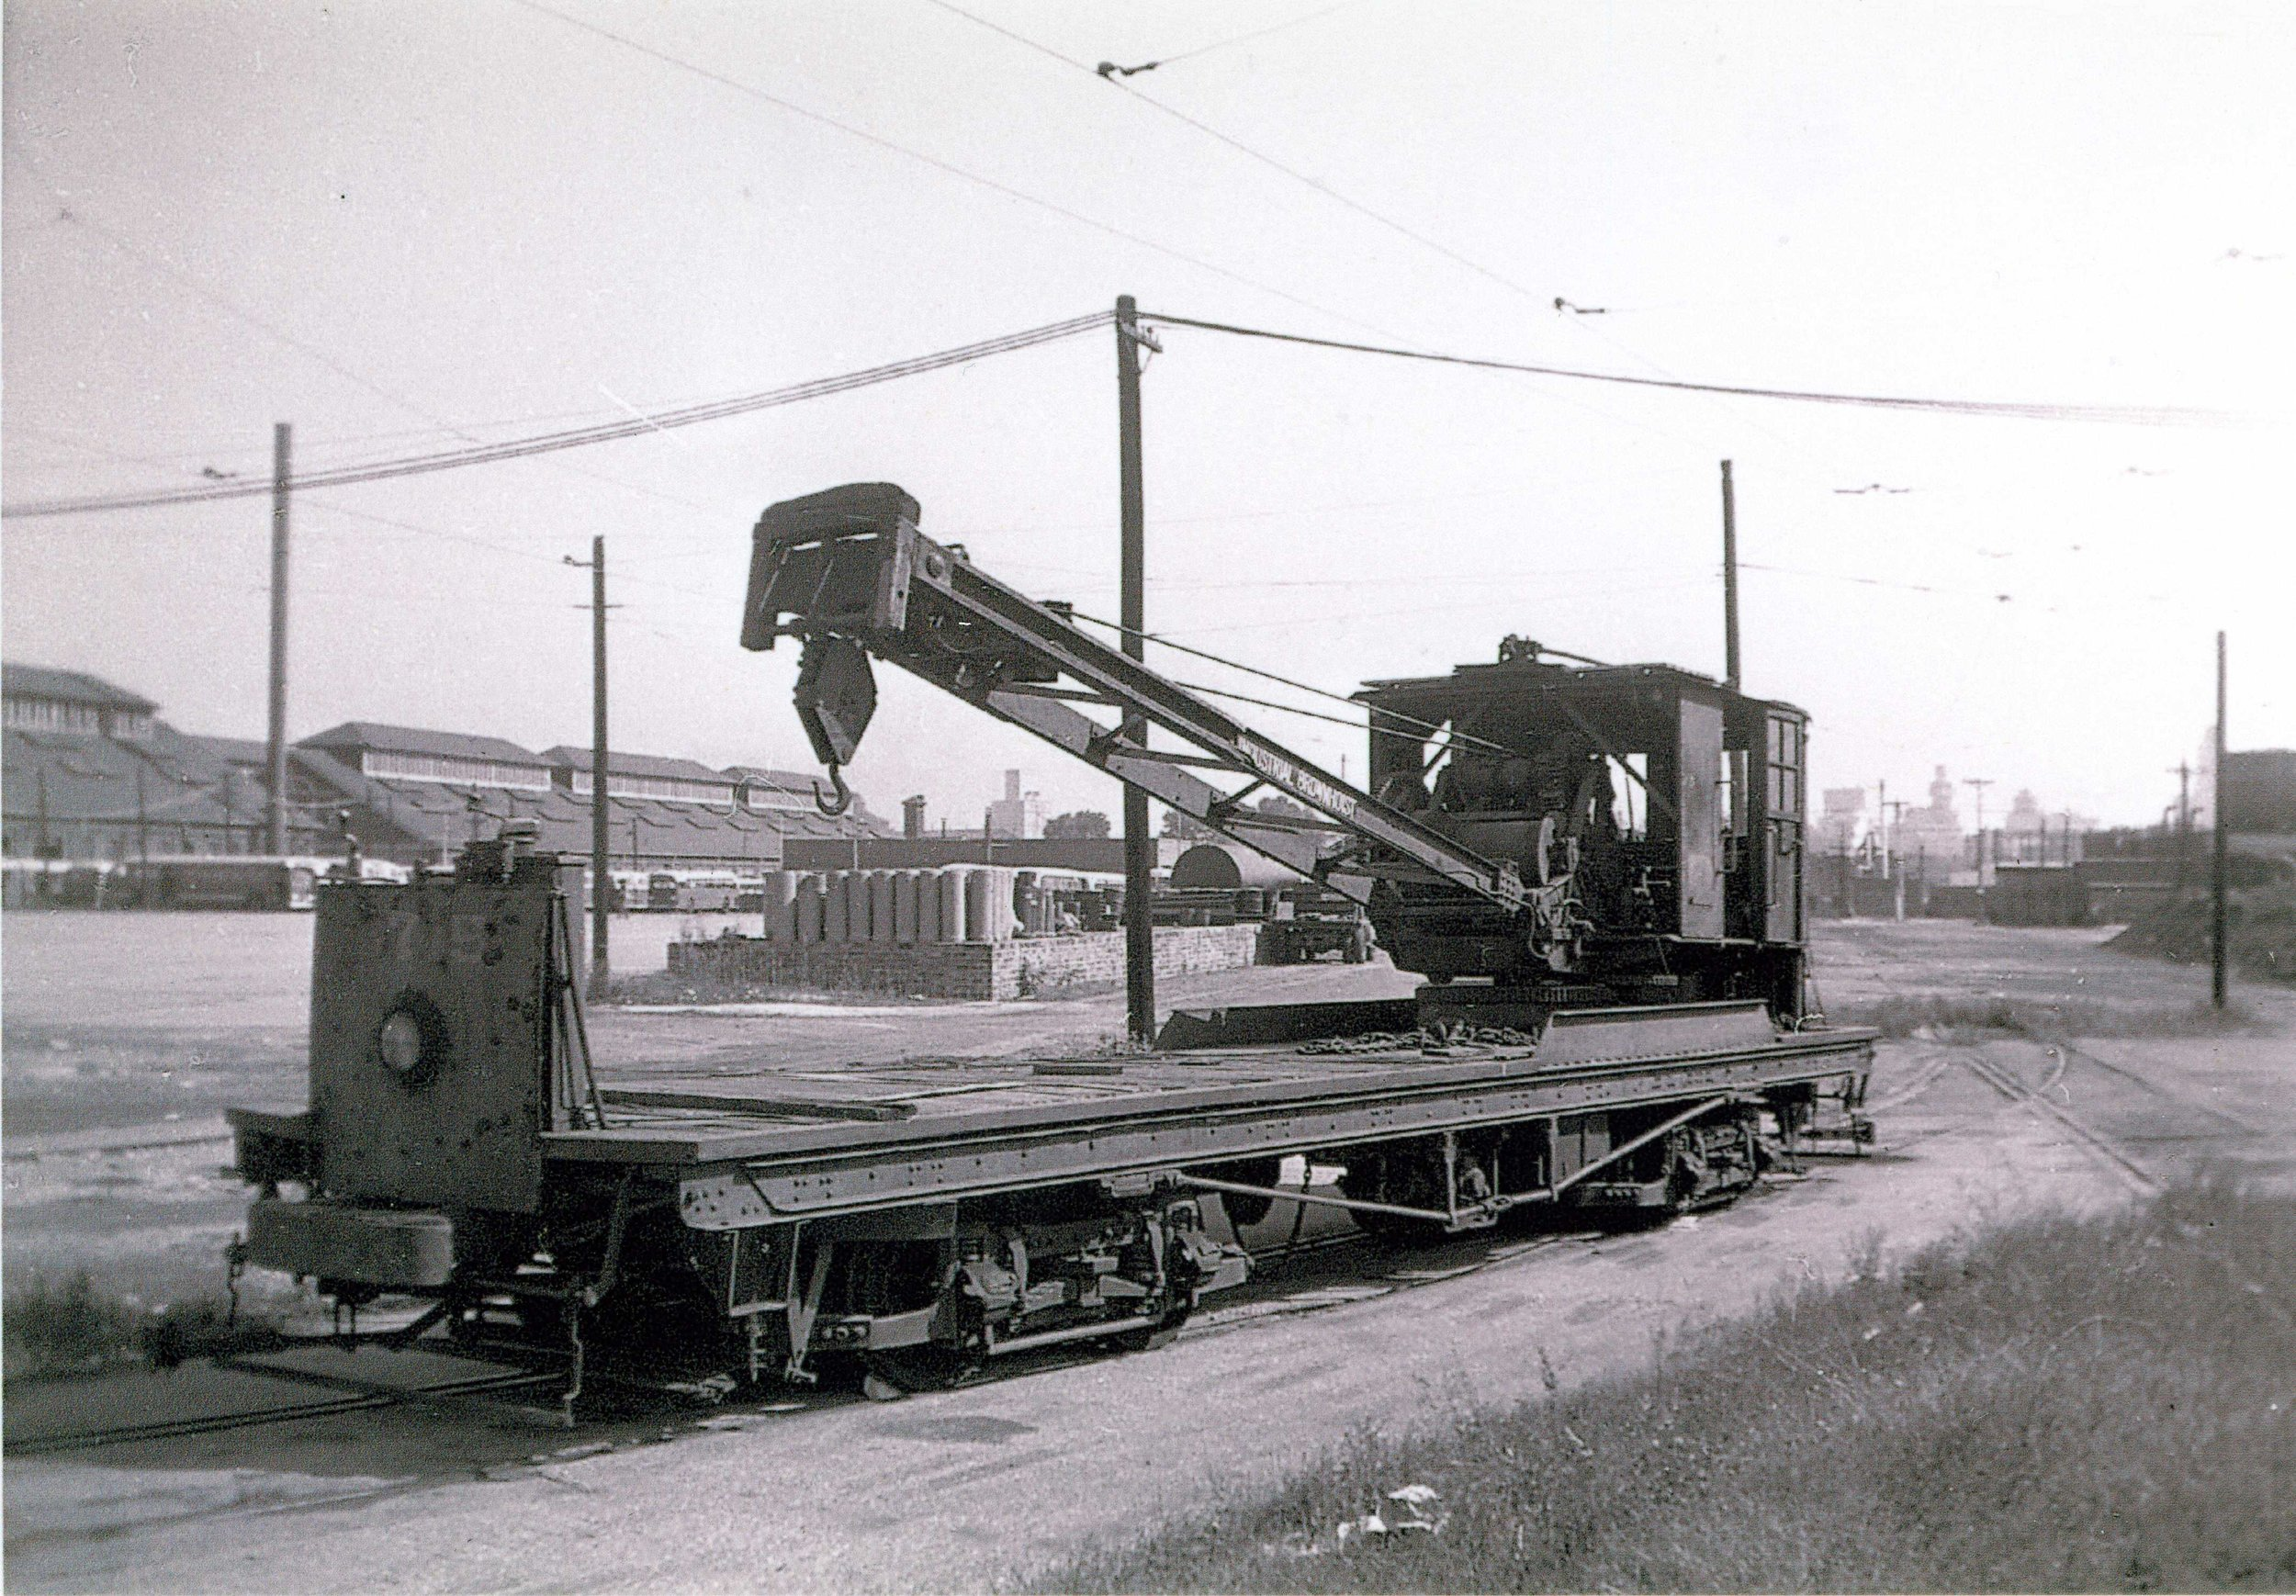 Crane 3715, Year 1913 Image Credit: Maryland Rail Heritage Library  Virtually every street railway system had its fleet of work cars— custom-built vehicles or homemade adaptations of former passenger cars. They performed a litany of unglamorous yet essential tasks, including grinding, placing and removing rail; servicing overhead wires; clearing snow; weeding the right of way; and cleaning streets. One of the only two pieces of Baltimore work equiptment to be preserved (overhead line truck No. 501 is the other), No. 3715is an electric crane car. The crane portion was built by Brownhoist and the carbody by the United. No. 3715 was used for a variety of tasks, including track placement and extraction, and the setting of line poles. Lifting capacity was five tons. The crane was upgraded by its new owners, Baltimore Transit, in 1938. After its withdrawal from service in the mid 1950s, the crane was purchase in 1956 by the Branford Trolley Museum in Branford, Connecticut, where it performed many of the same activities while on duty in Baltimore. In 1998, it was acquired by the BSM, bringing it back home after more than 40 years.